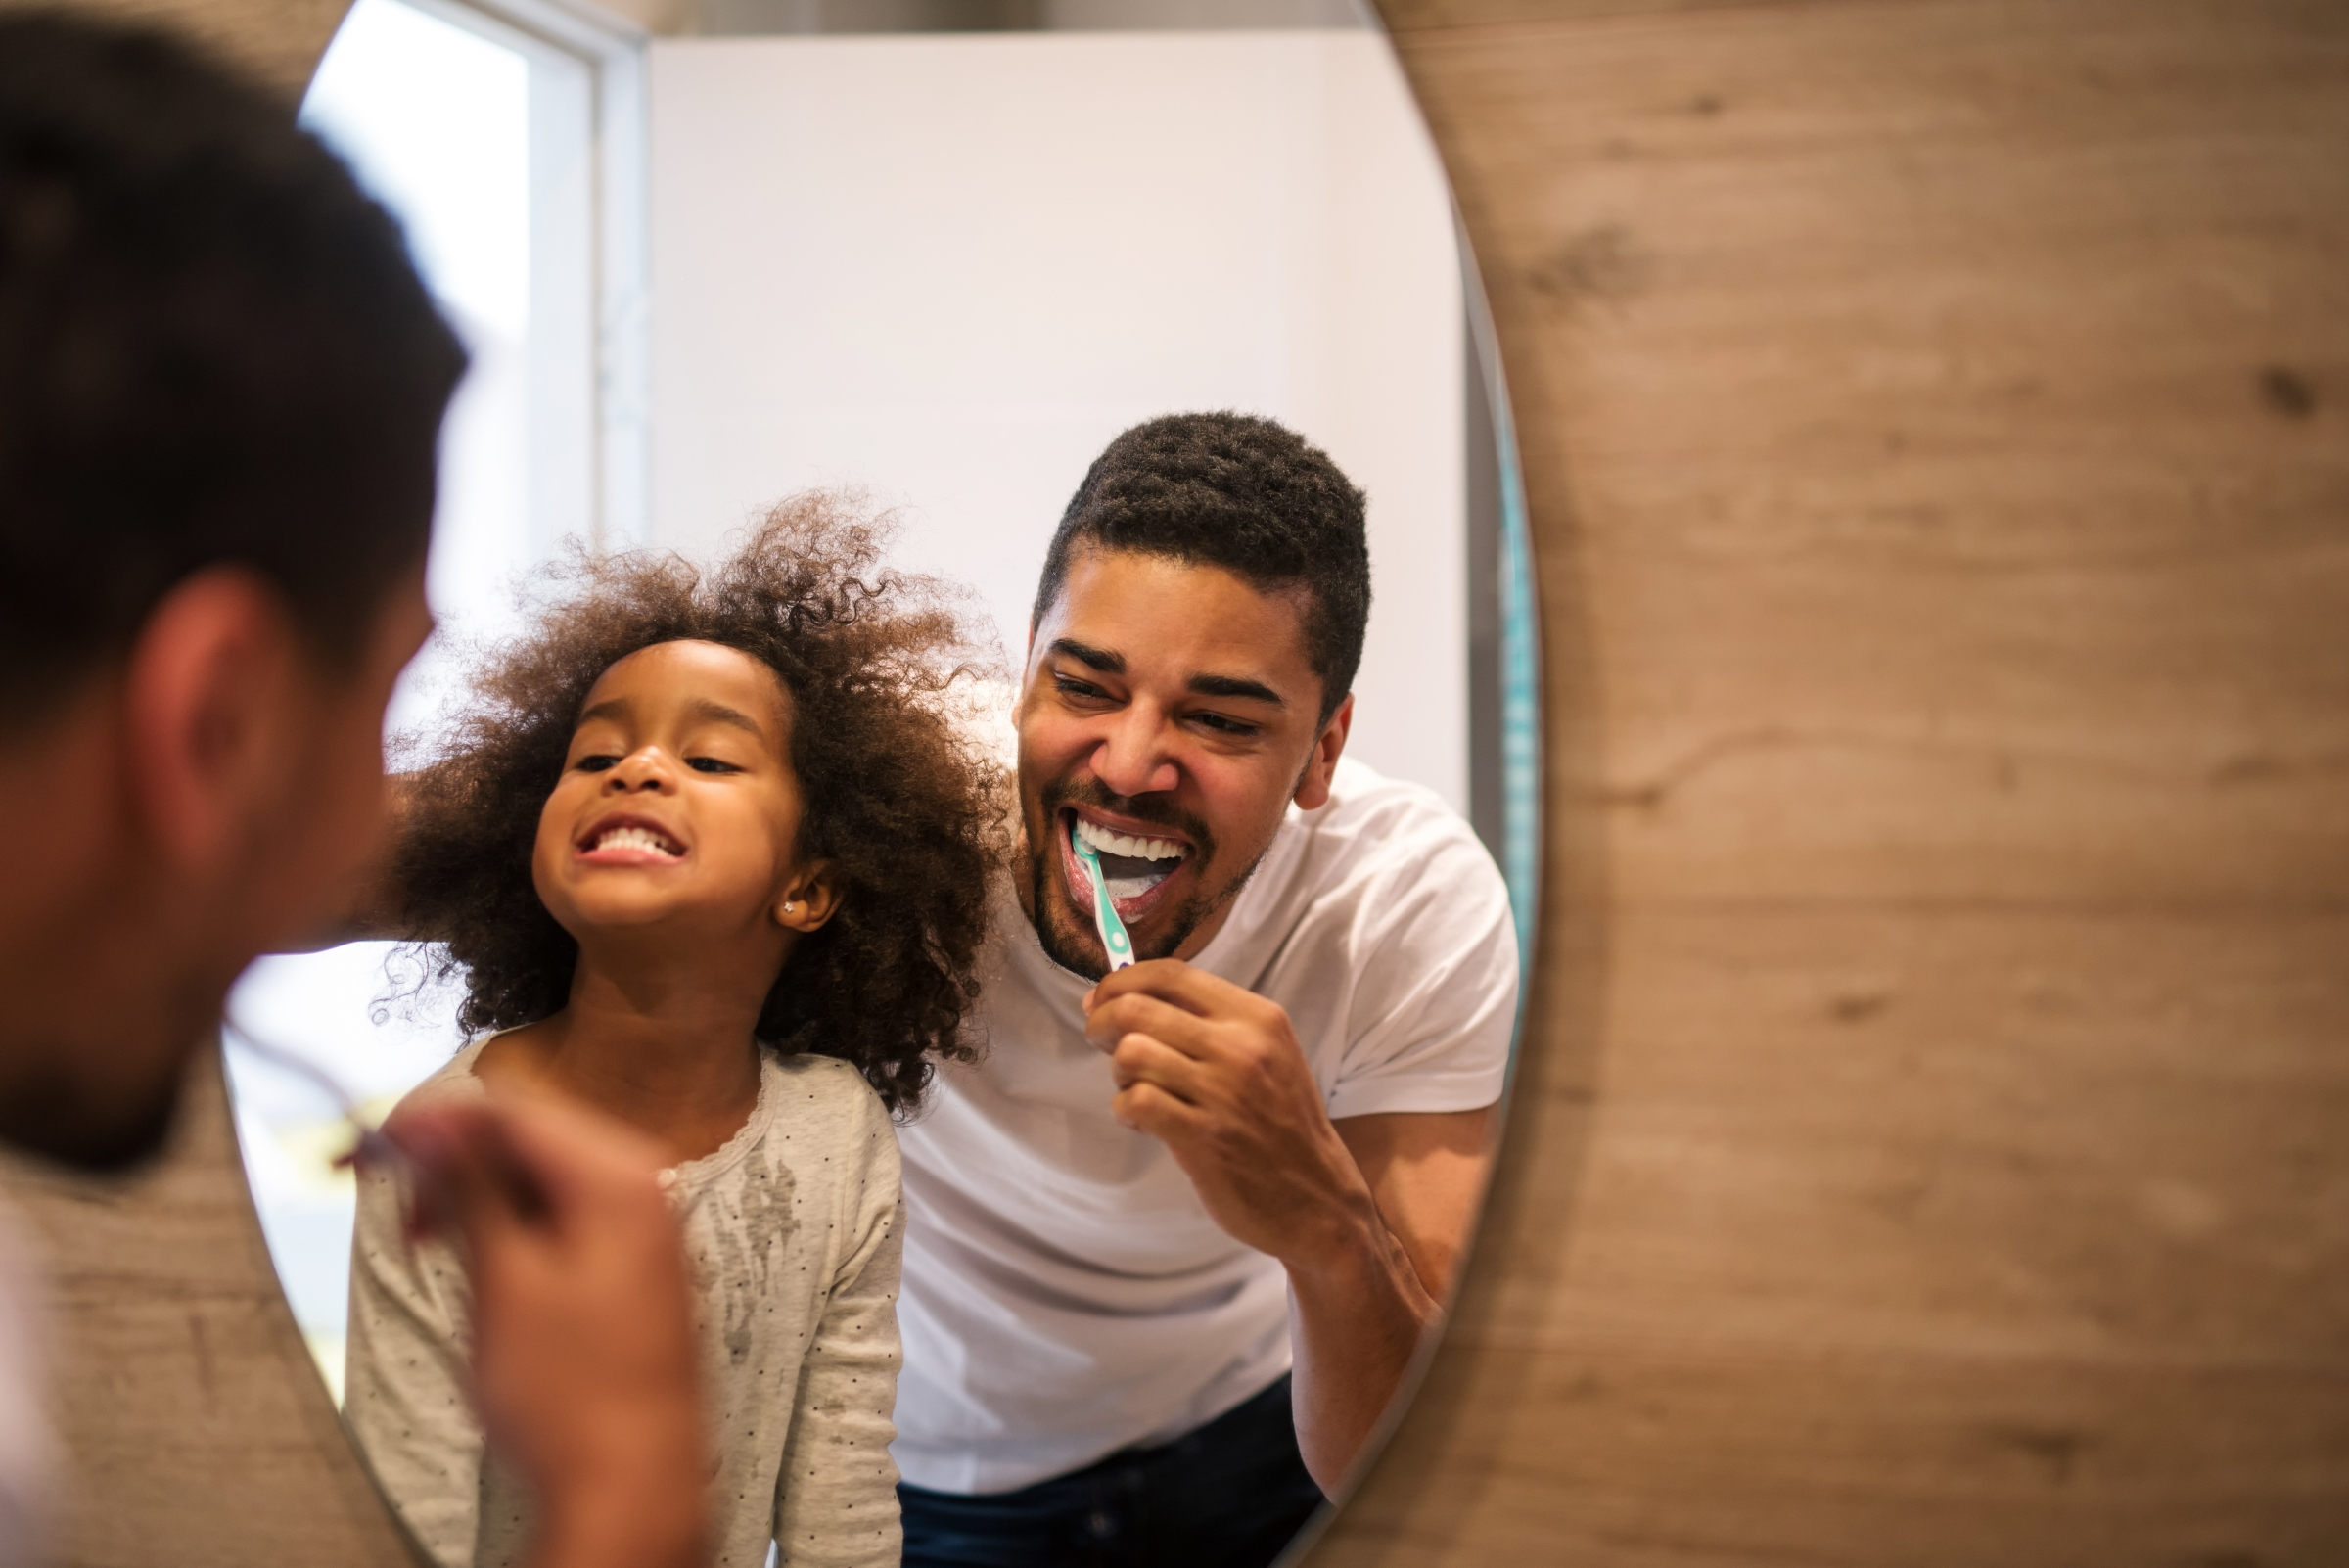 Father and daughter brushing teeth in front of bathroom mirror